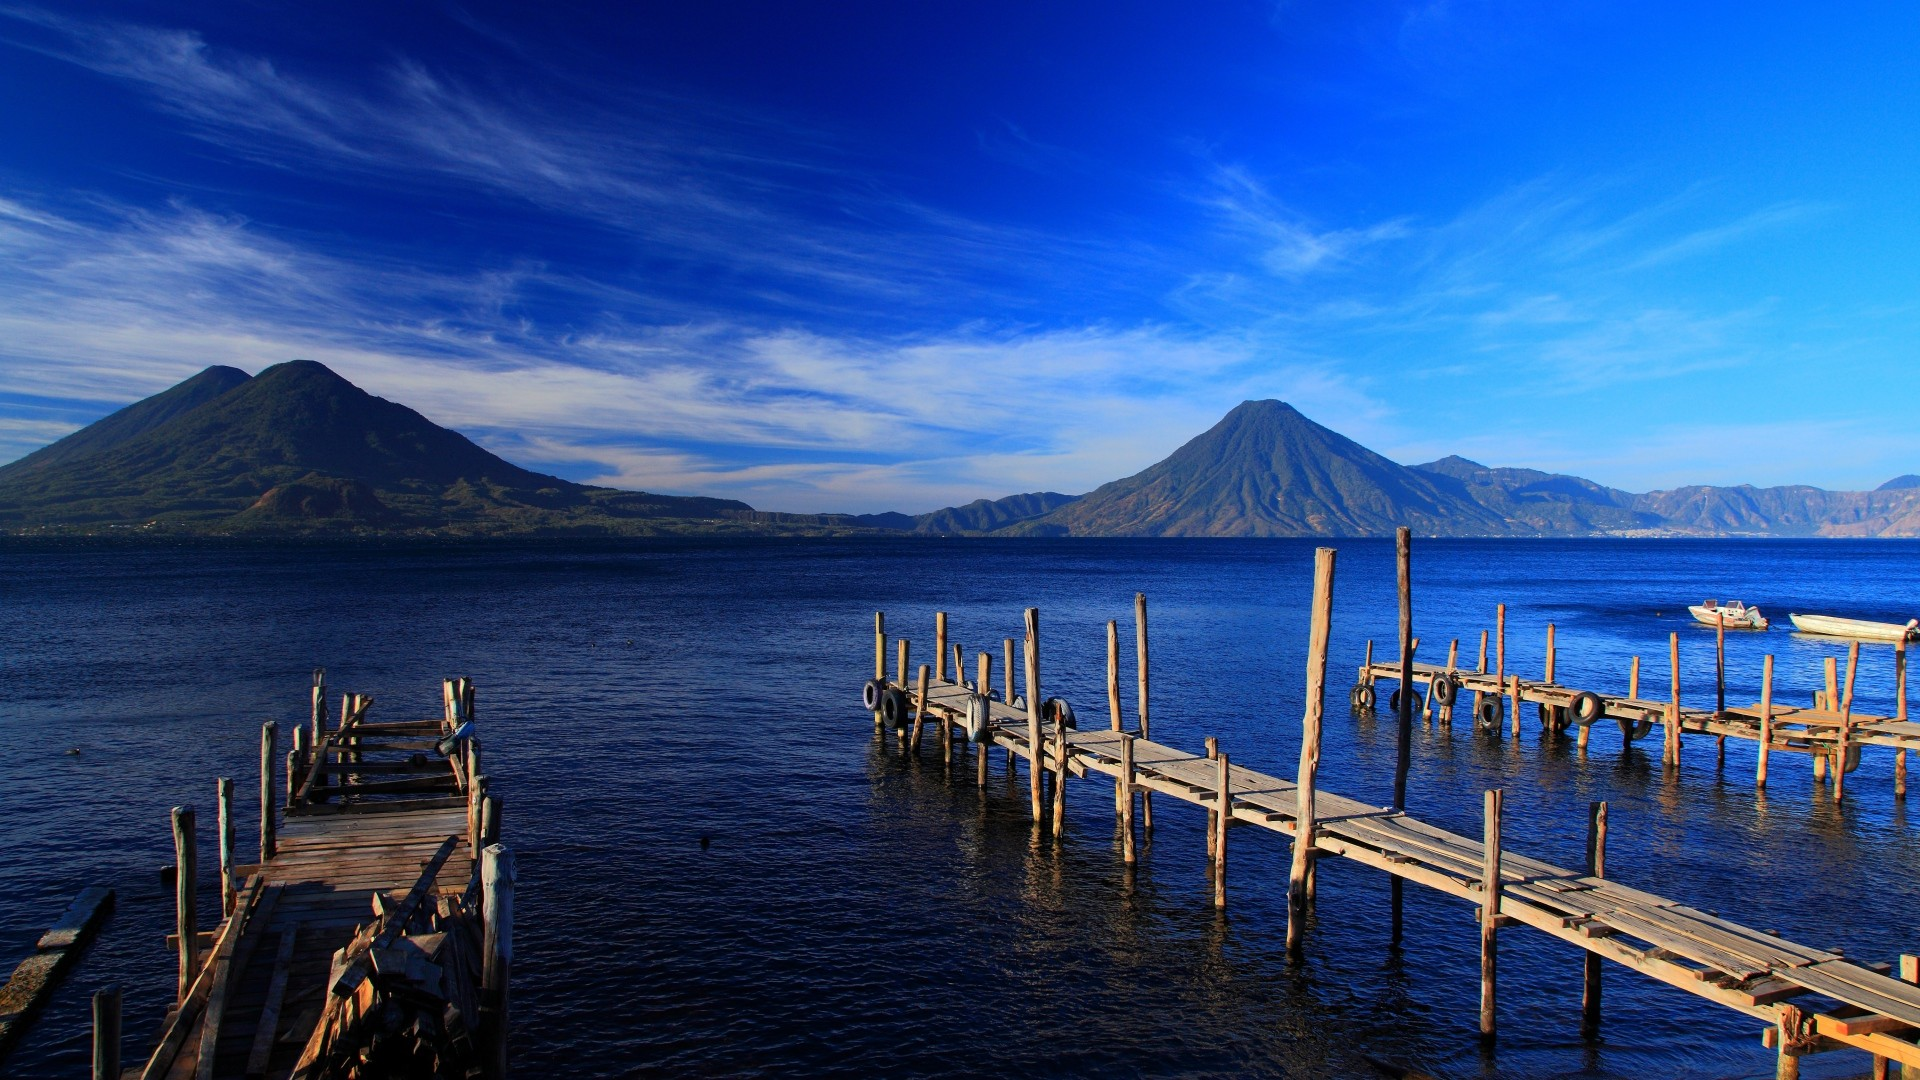 1920x1080 ... Background Full HD 1080p.  Wallpaper guatemala, island,  mountain, beach